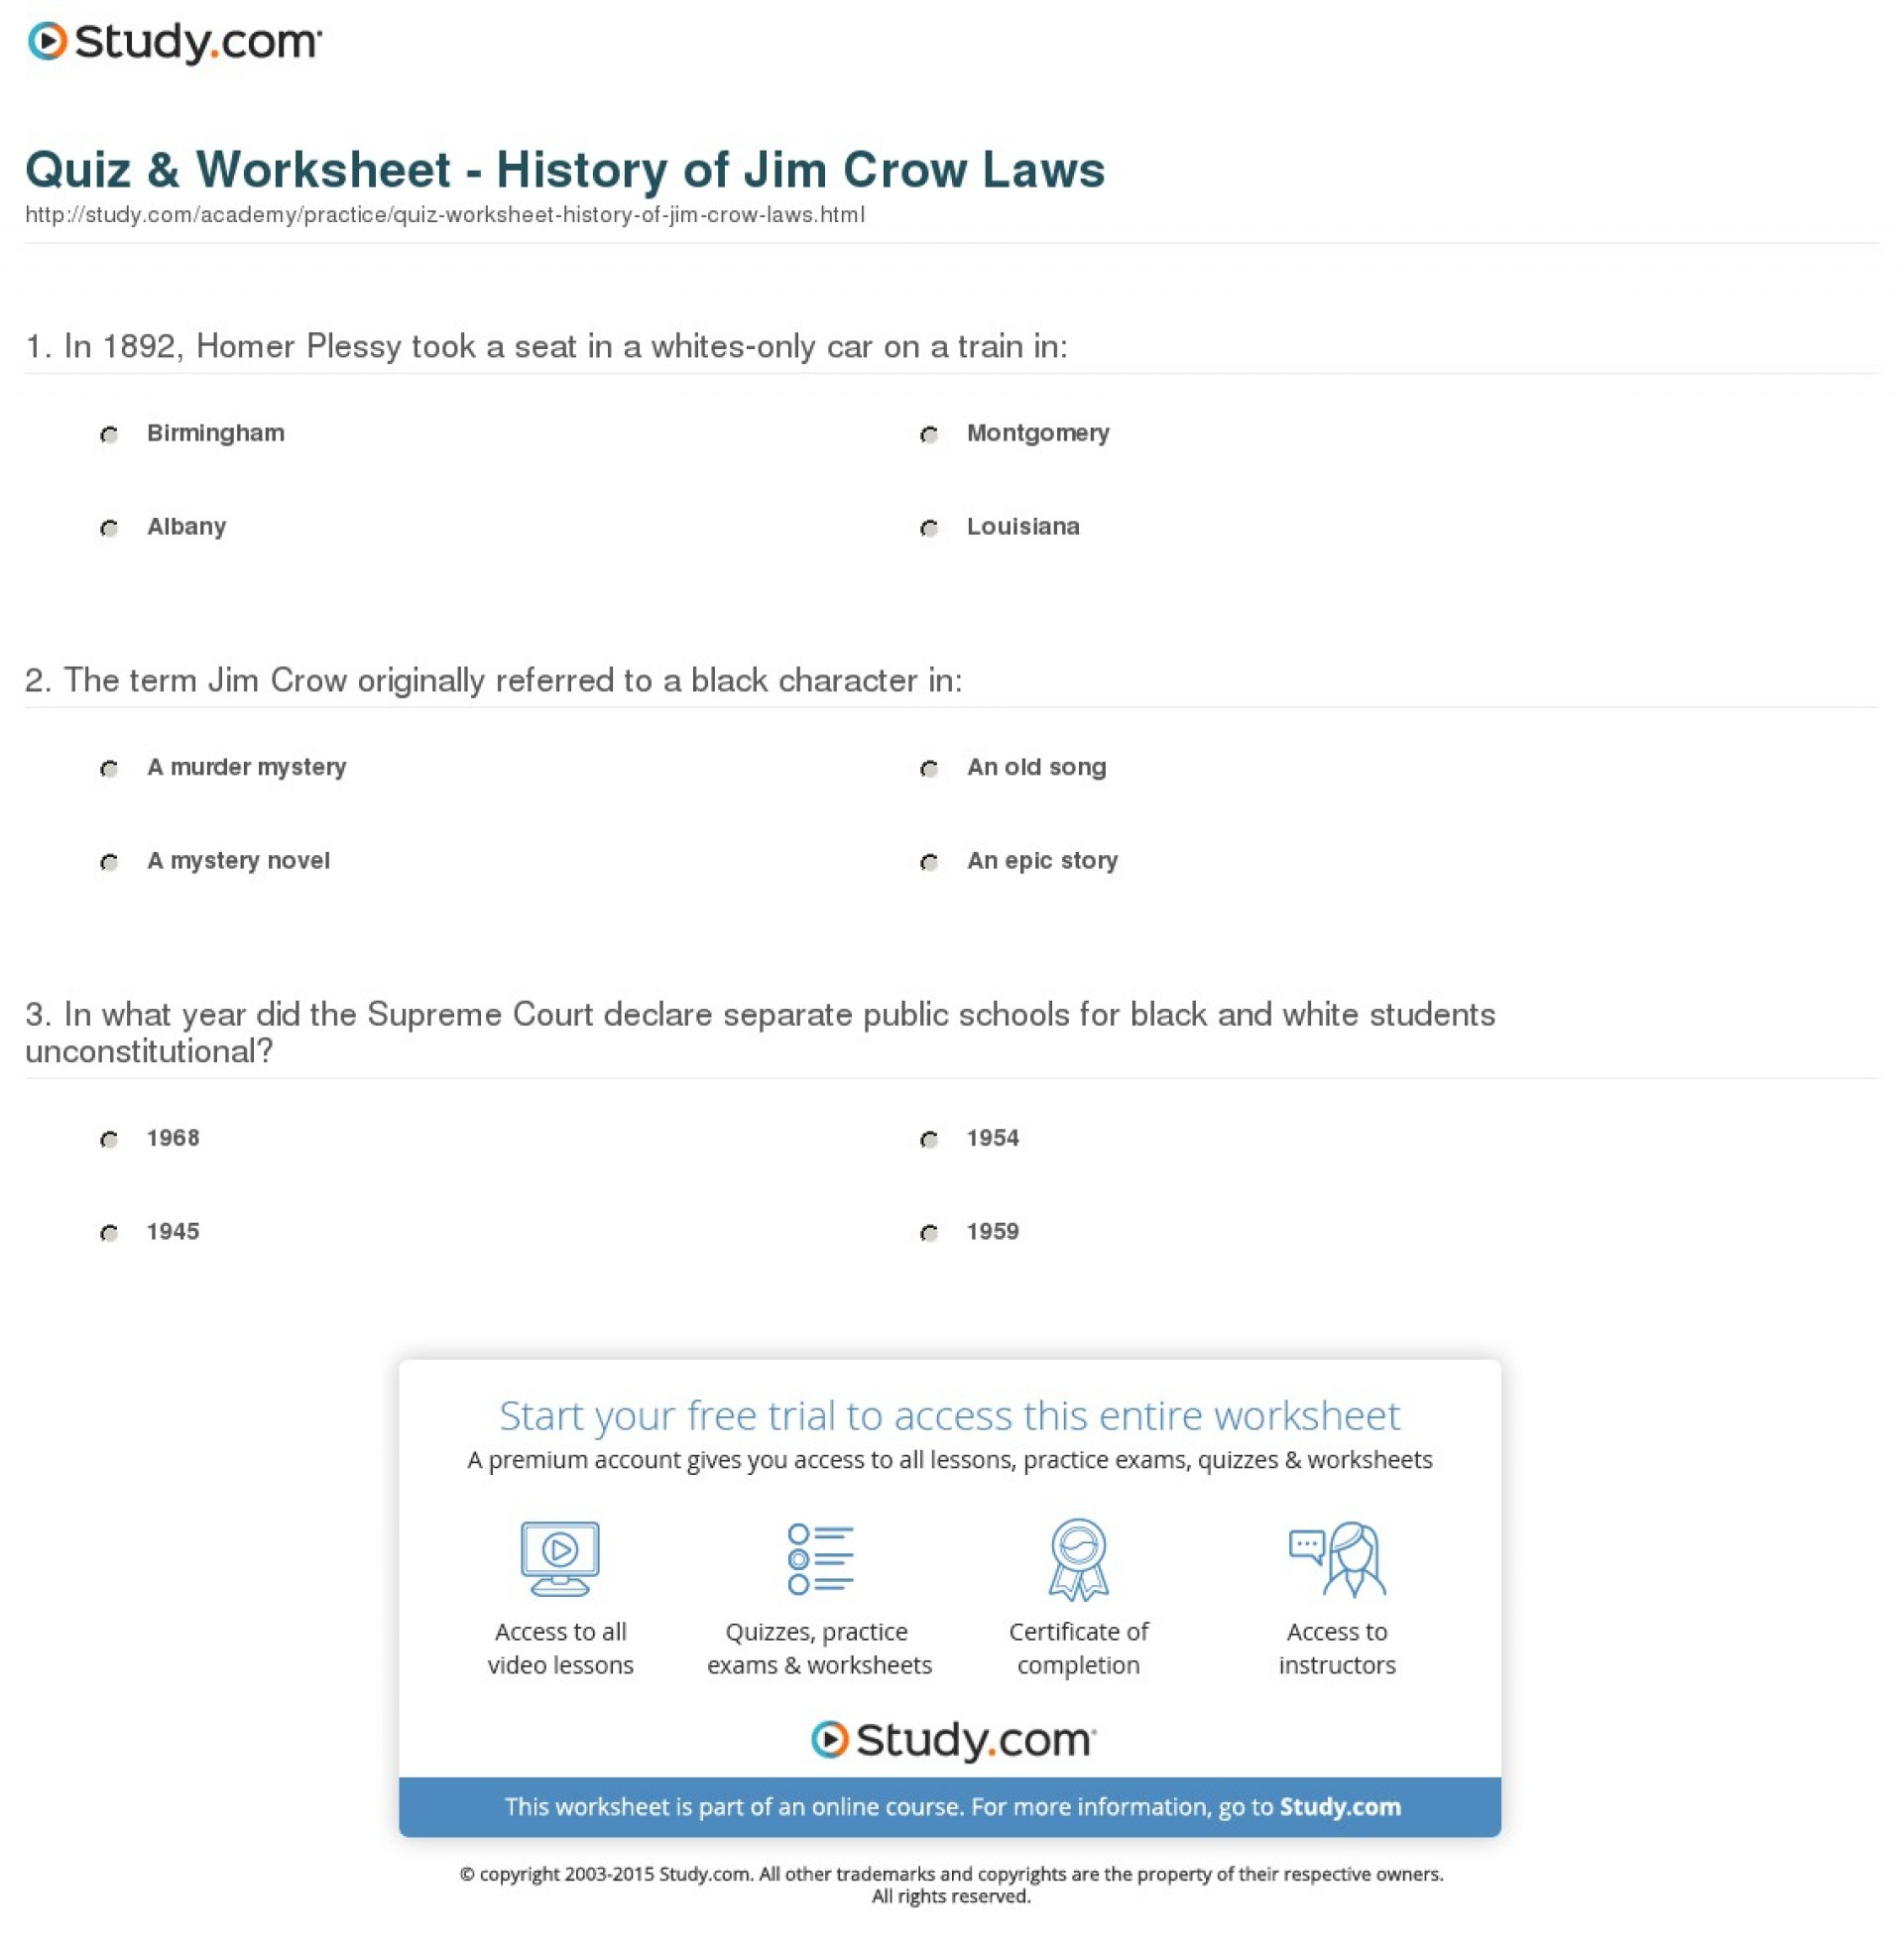 011 Quiz Worksheet History Of Jim Crow Laws Essay Example Definition Striking Topics For College Students Middle School 1920